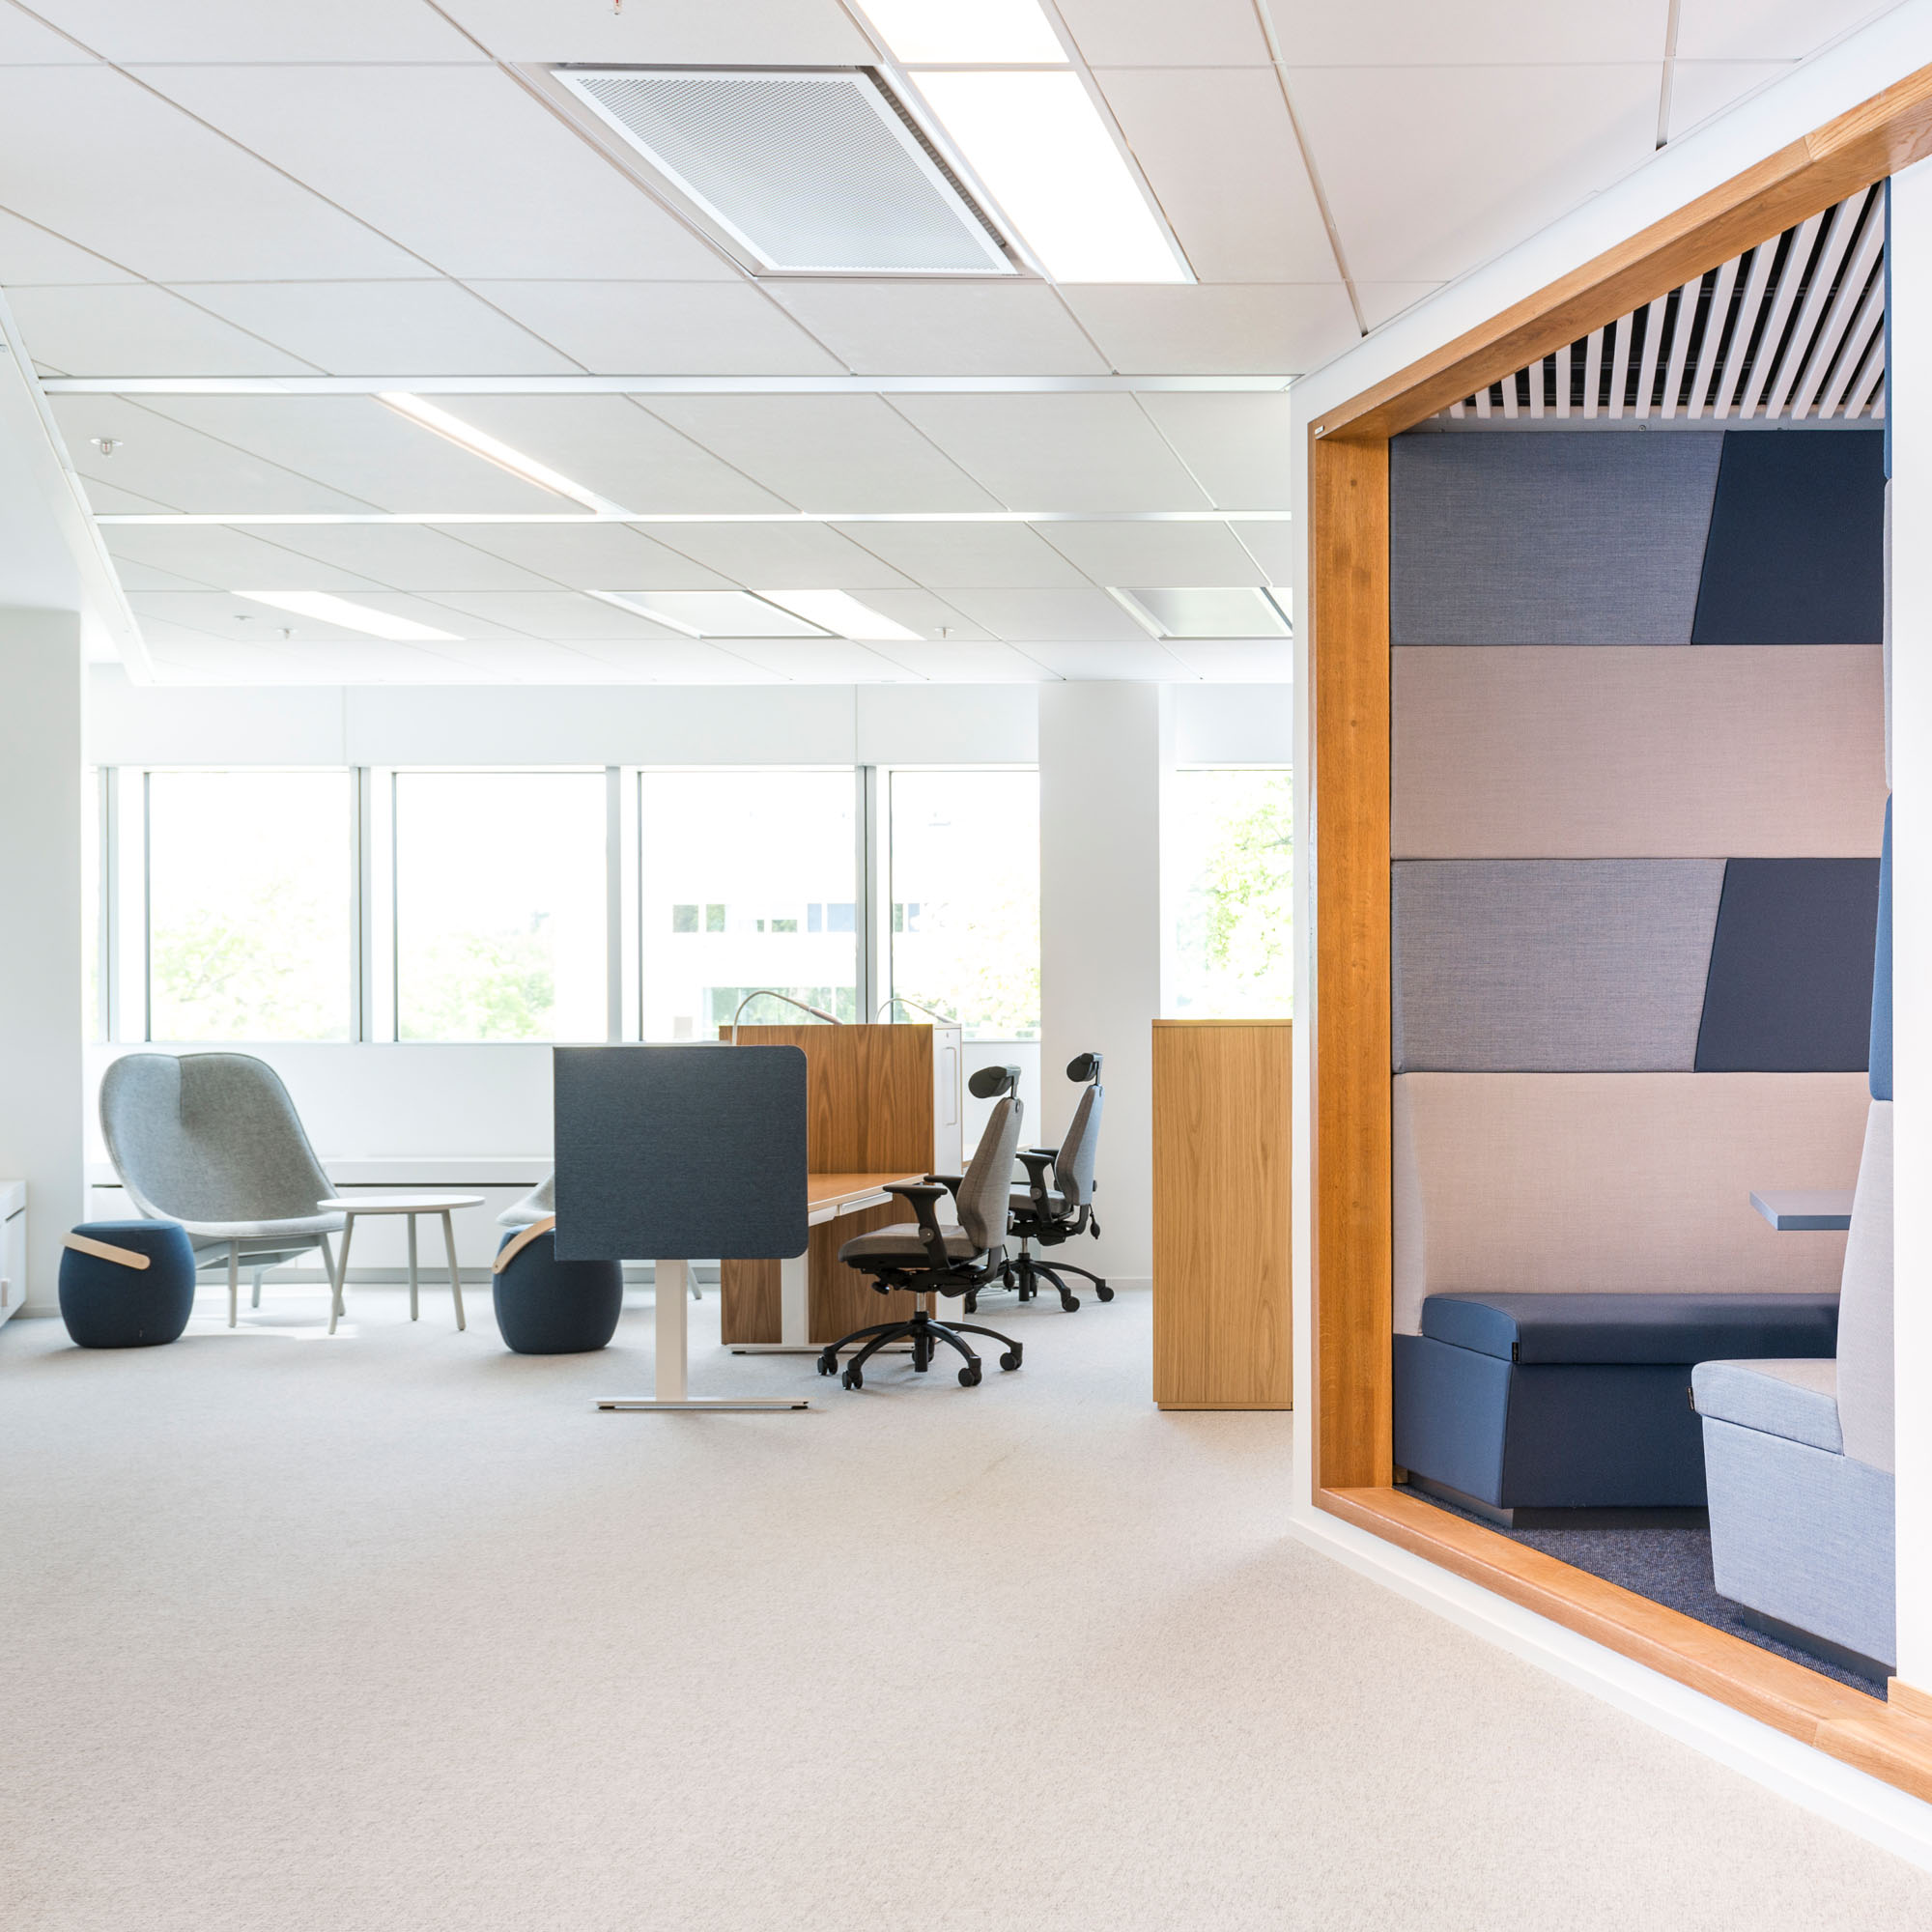 office space featuring Offecct and RH chairs, at Segerstedthuset building, uppsala university